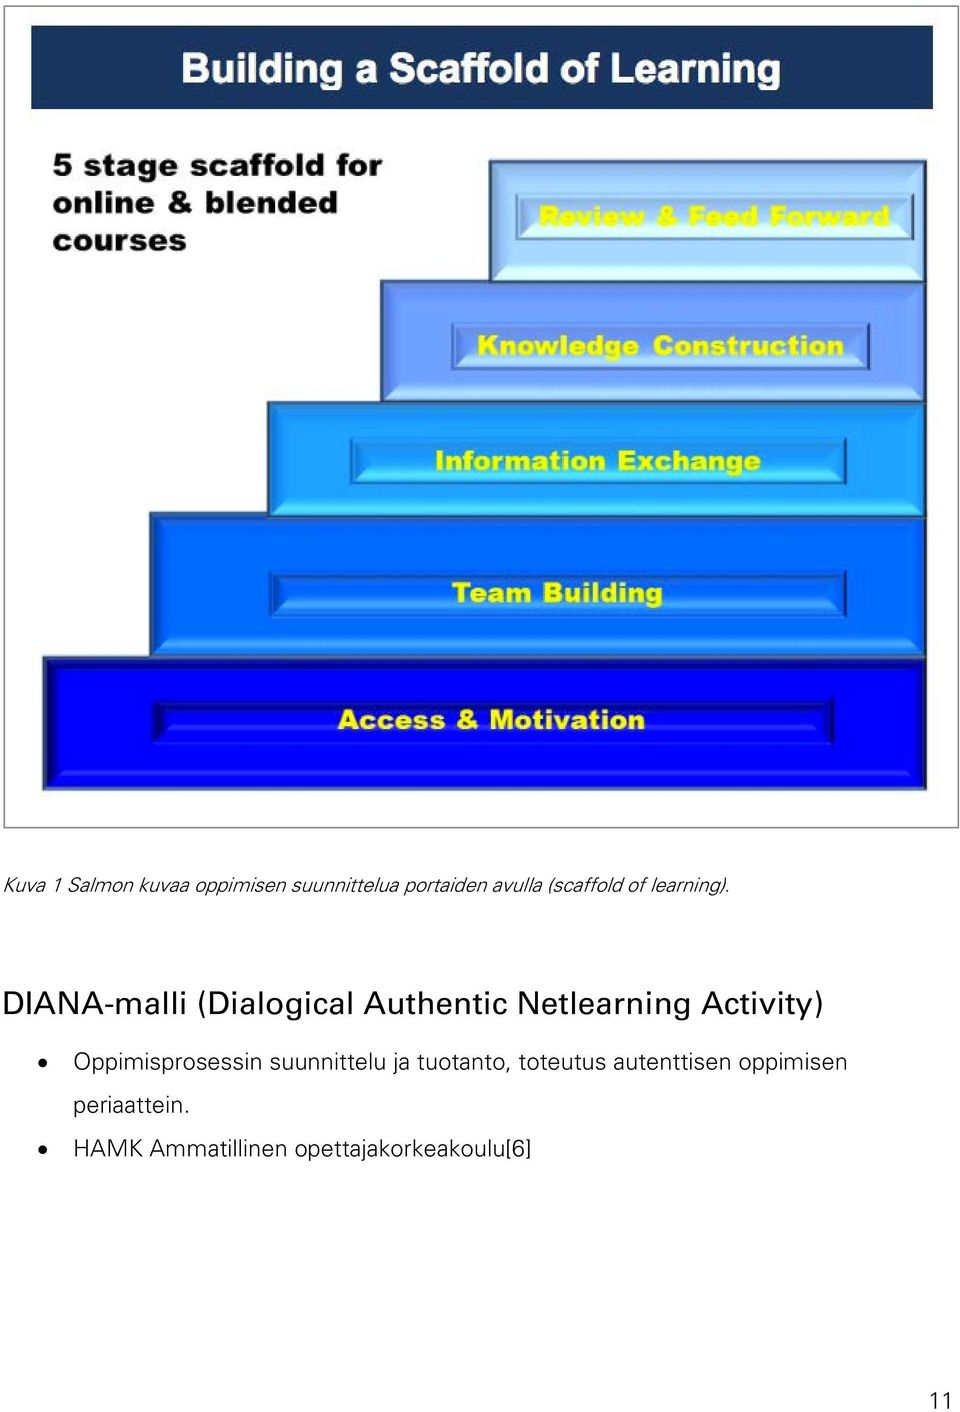 DIANA-malli (Dialogical Authentic Netlearning Activity)